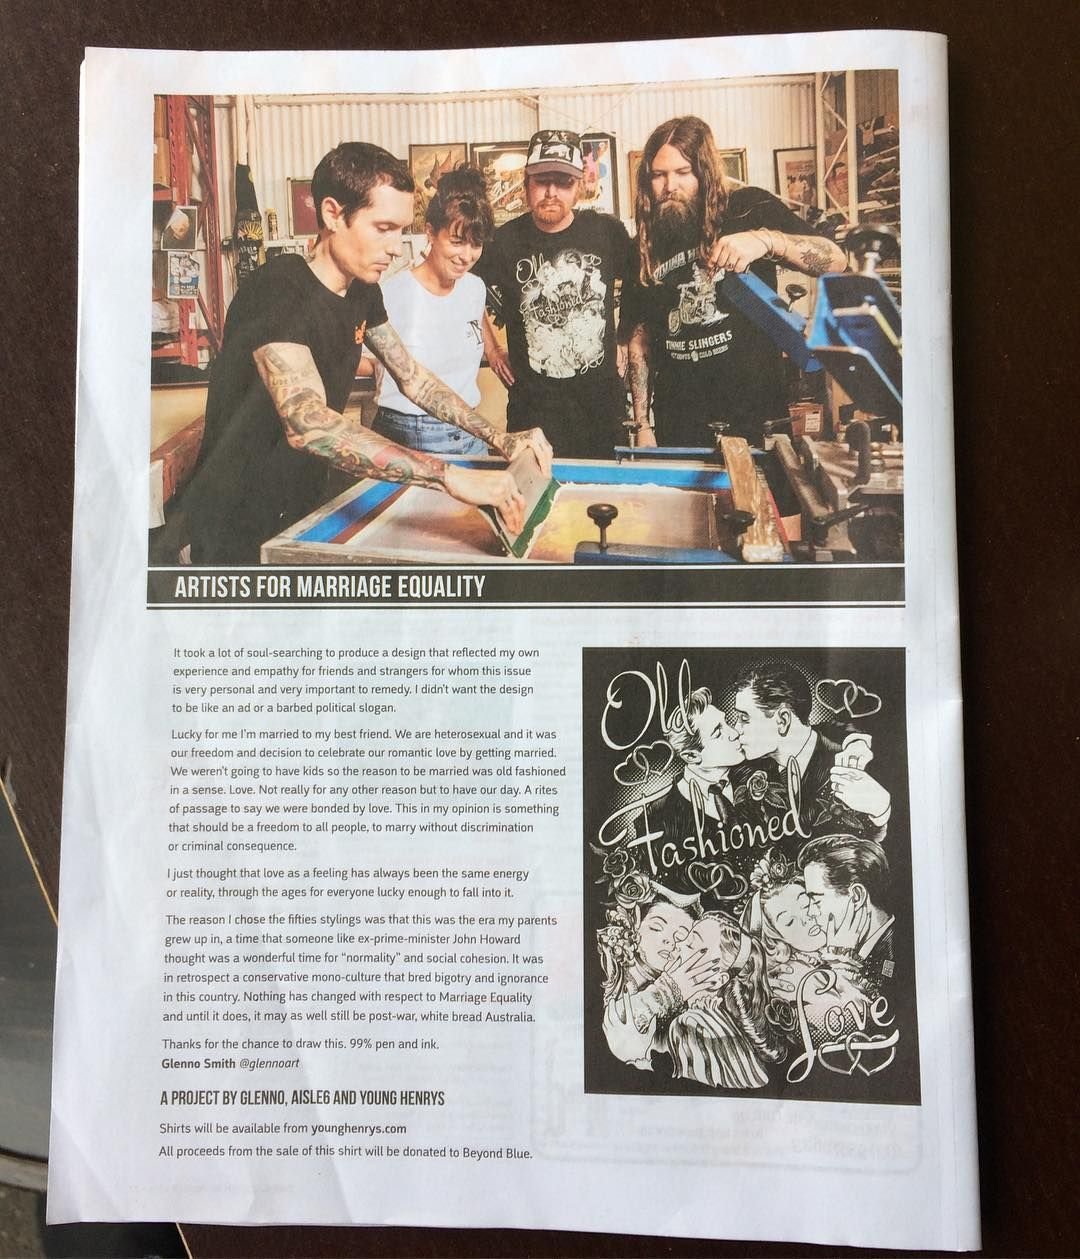 Be sure and grab this weeks @themusiccomau #magazine so you can check out the awesome artwork that  @glennoart created for #marraigeequality - it's a project that we've proudly worked on with @younghenrys  and @glennoart with all proceeds from the sale of the #tshirt going to @beyondblueofficial - they're on sale via the #younghenrys website. Shouts to #Mattyv and the #aisle6ix #crew - #alwayshandprint  #glenno